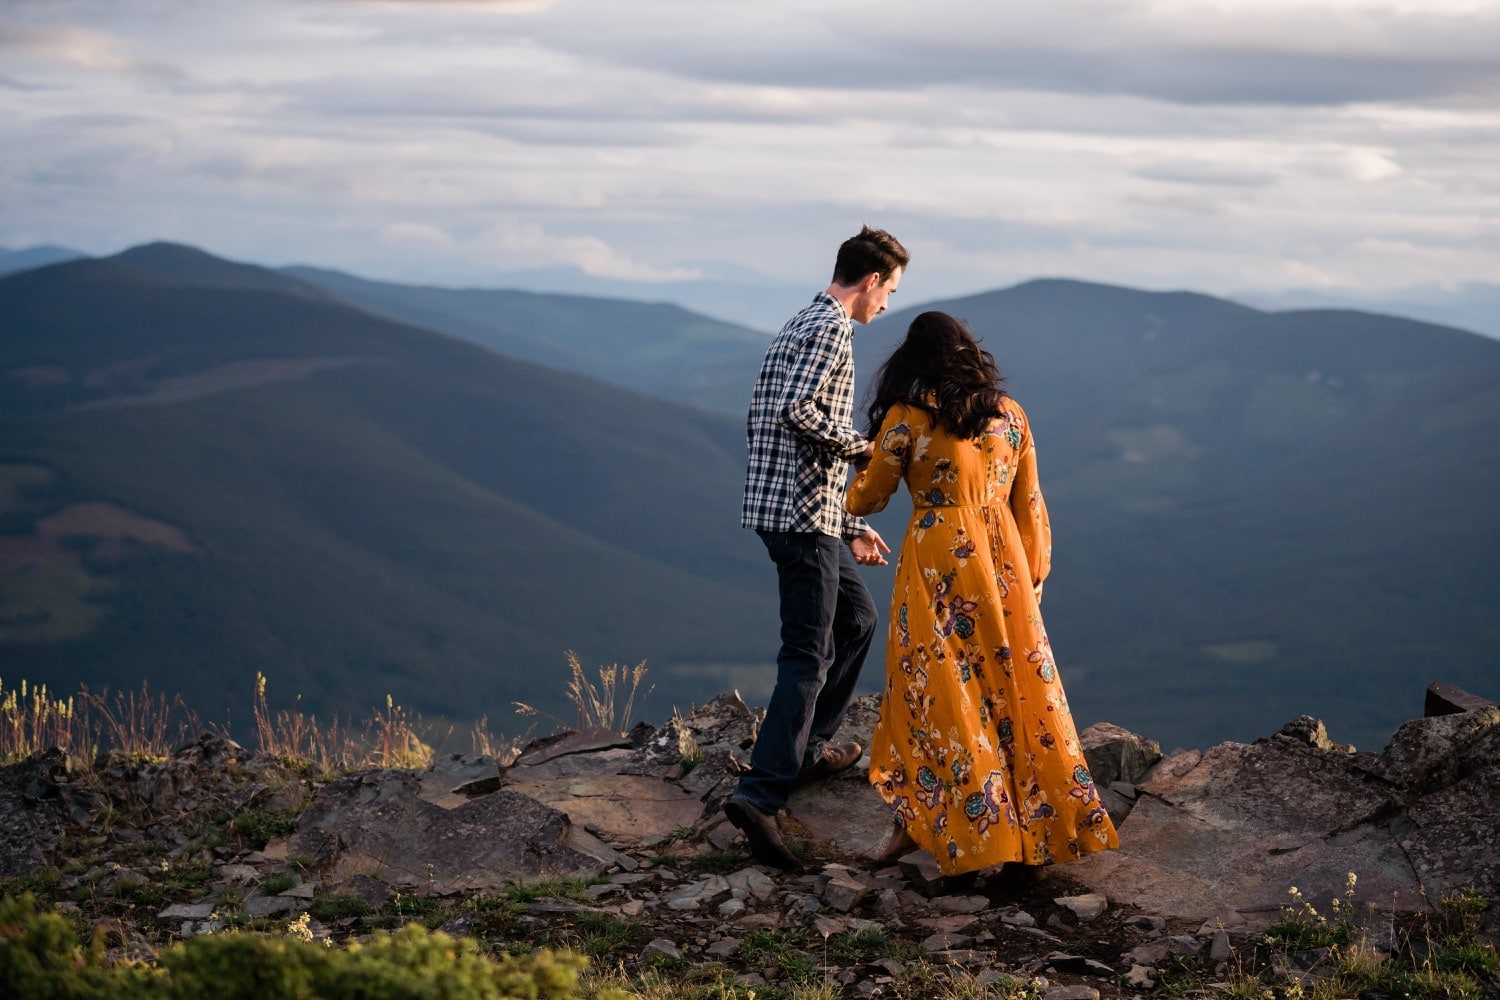 A man in jeans and a plaid button up shirt helps his girlfriend in a yellow flowing dress navigate the rocks on top of a mountain in the East Kootenays